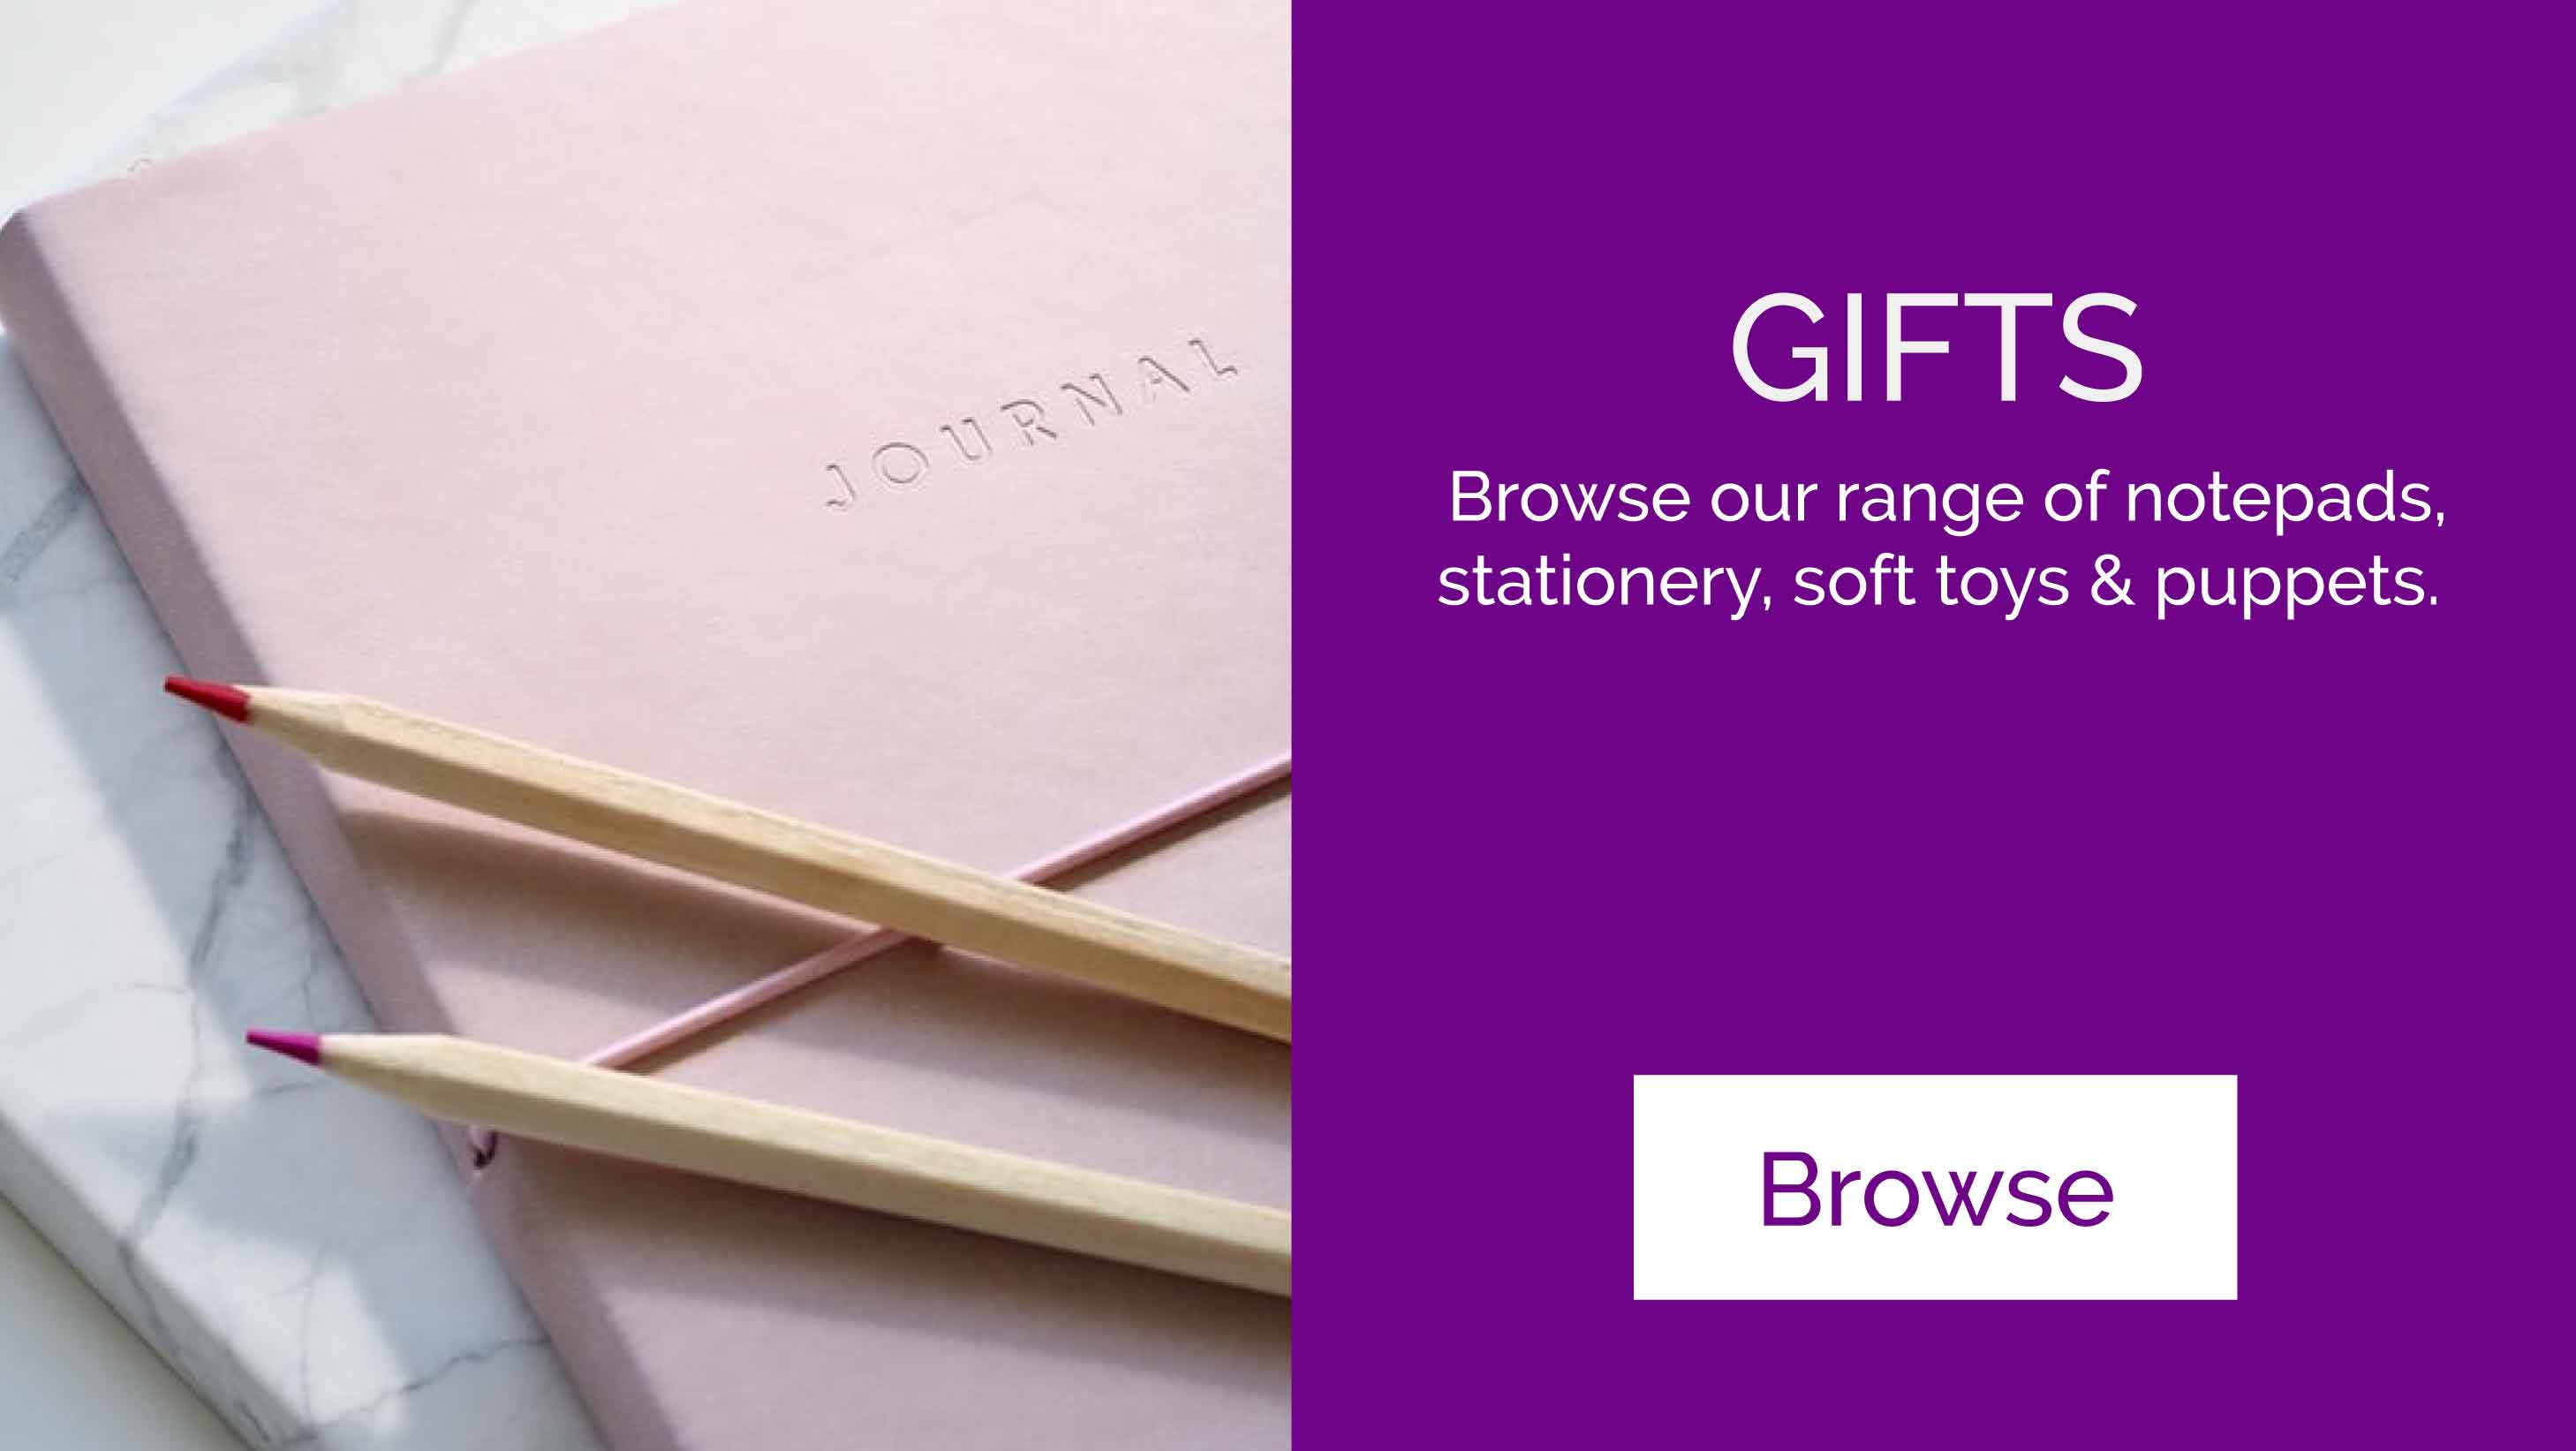 Shop gifts & notebooks